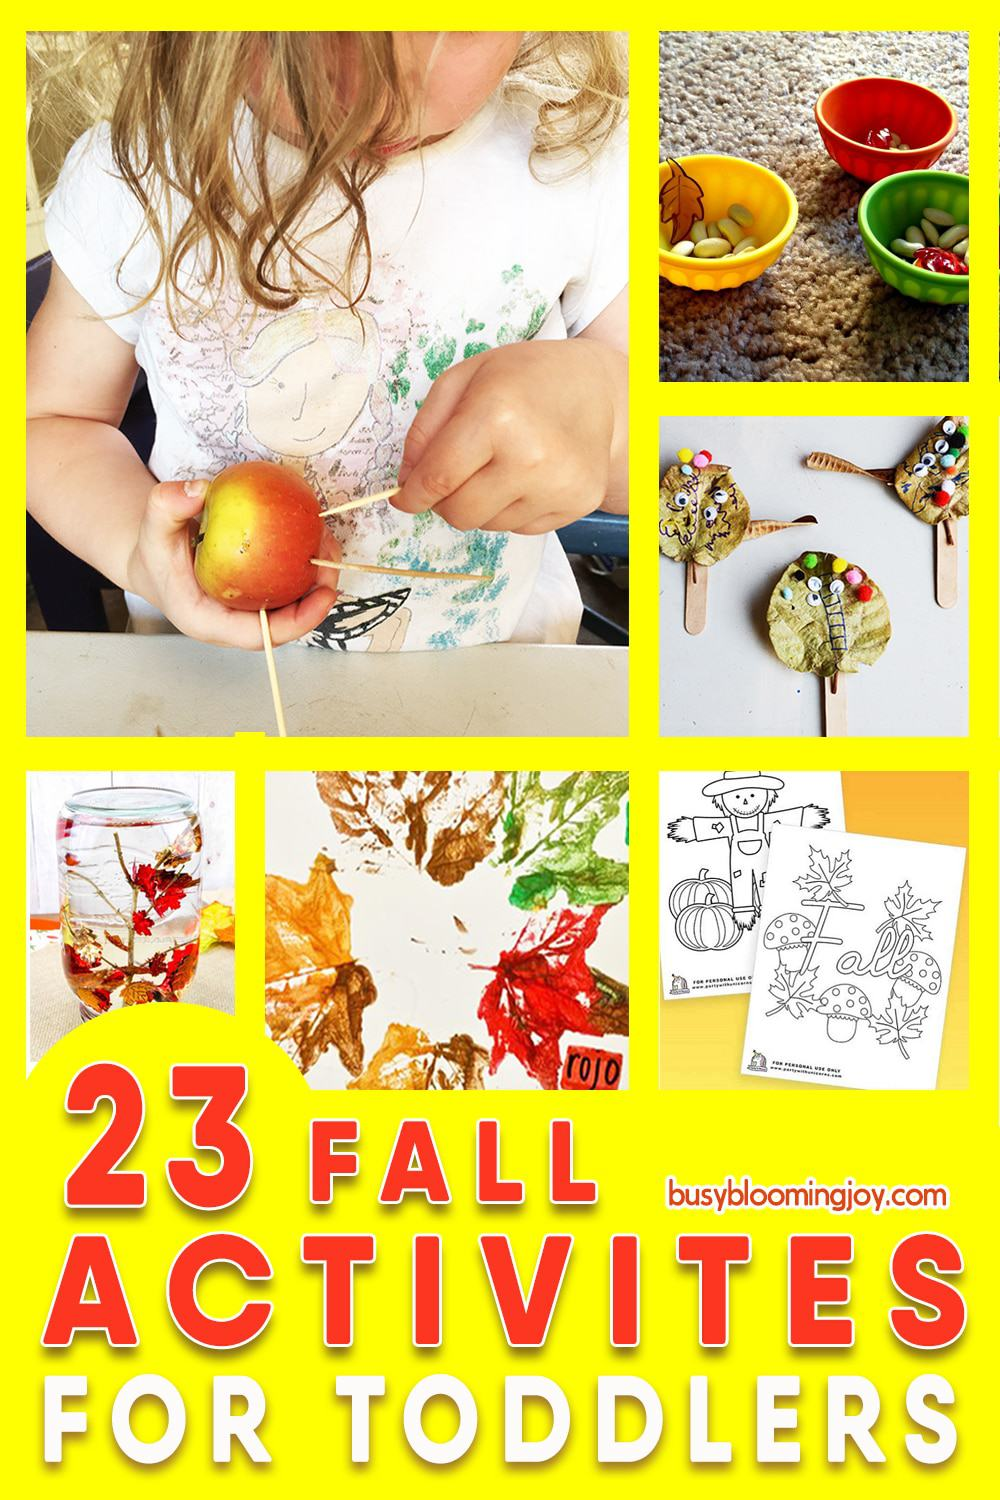 Fall activities for toddlers